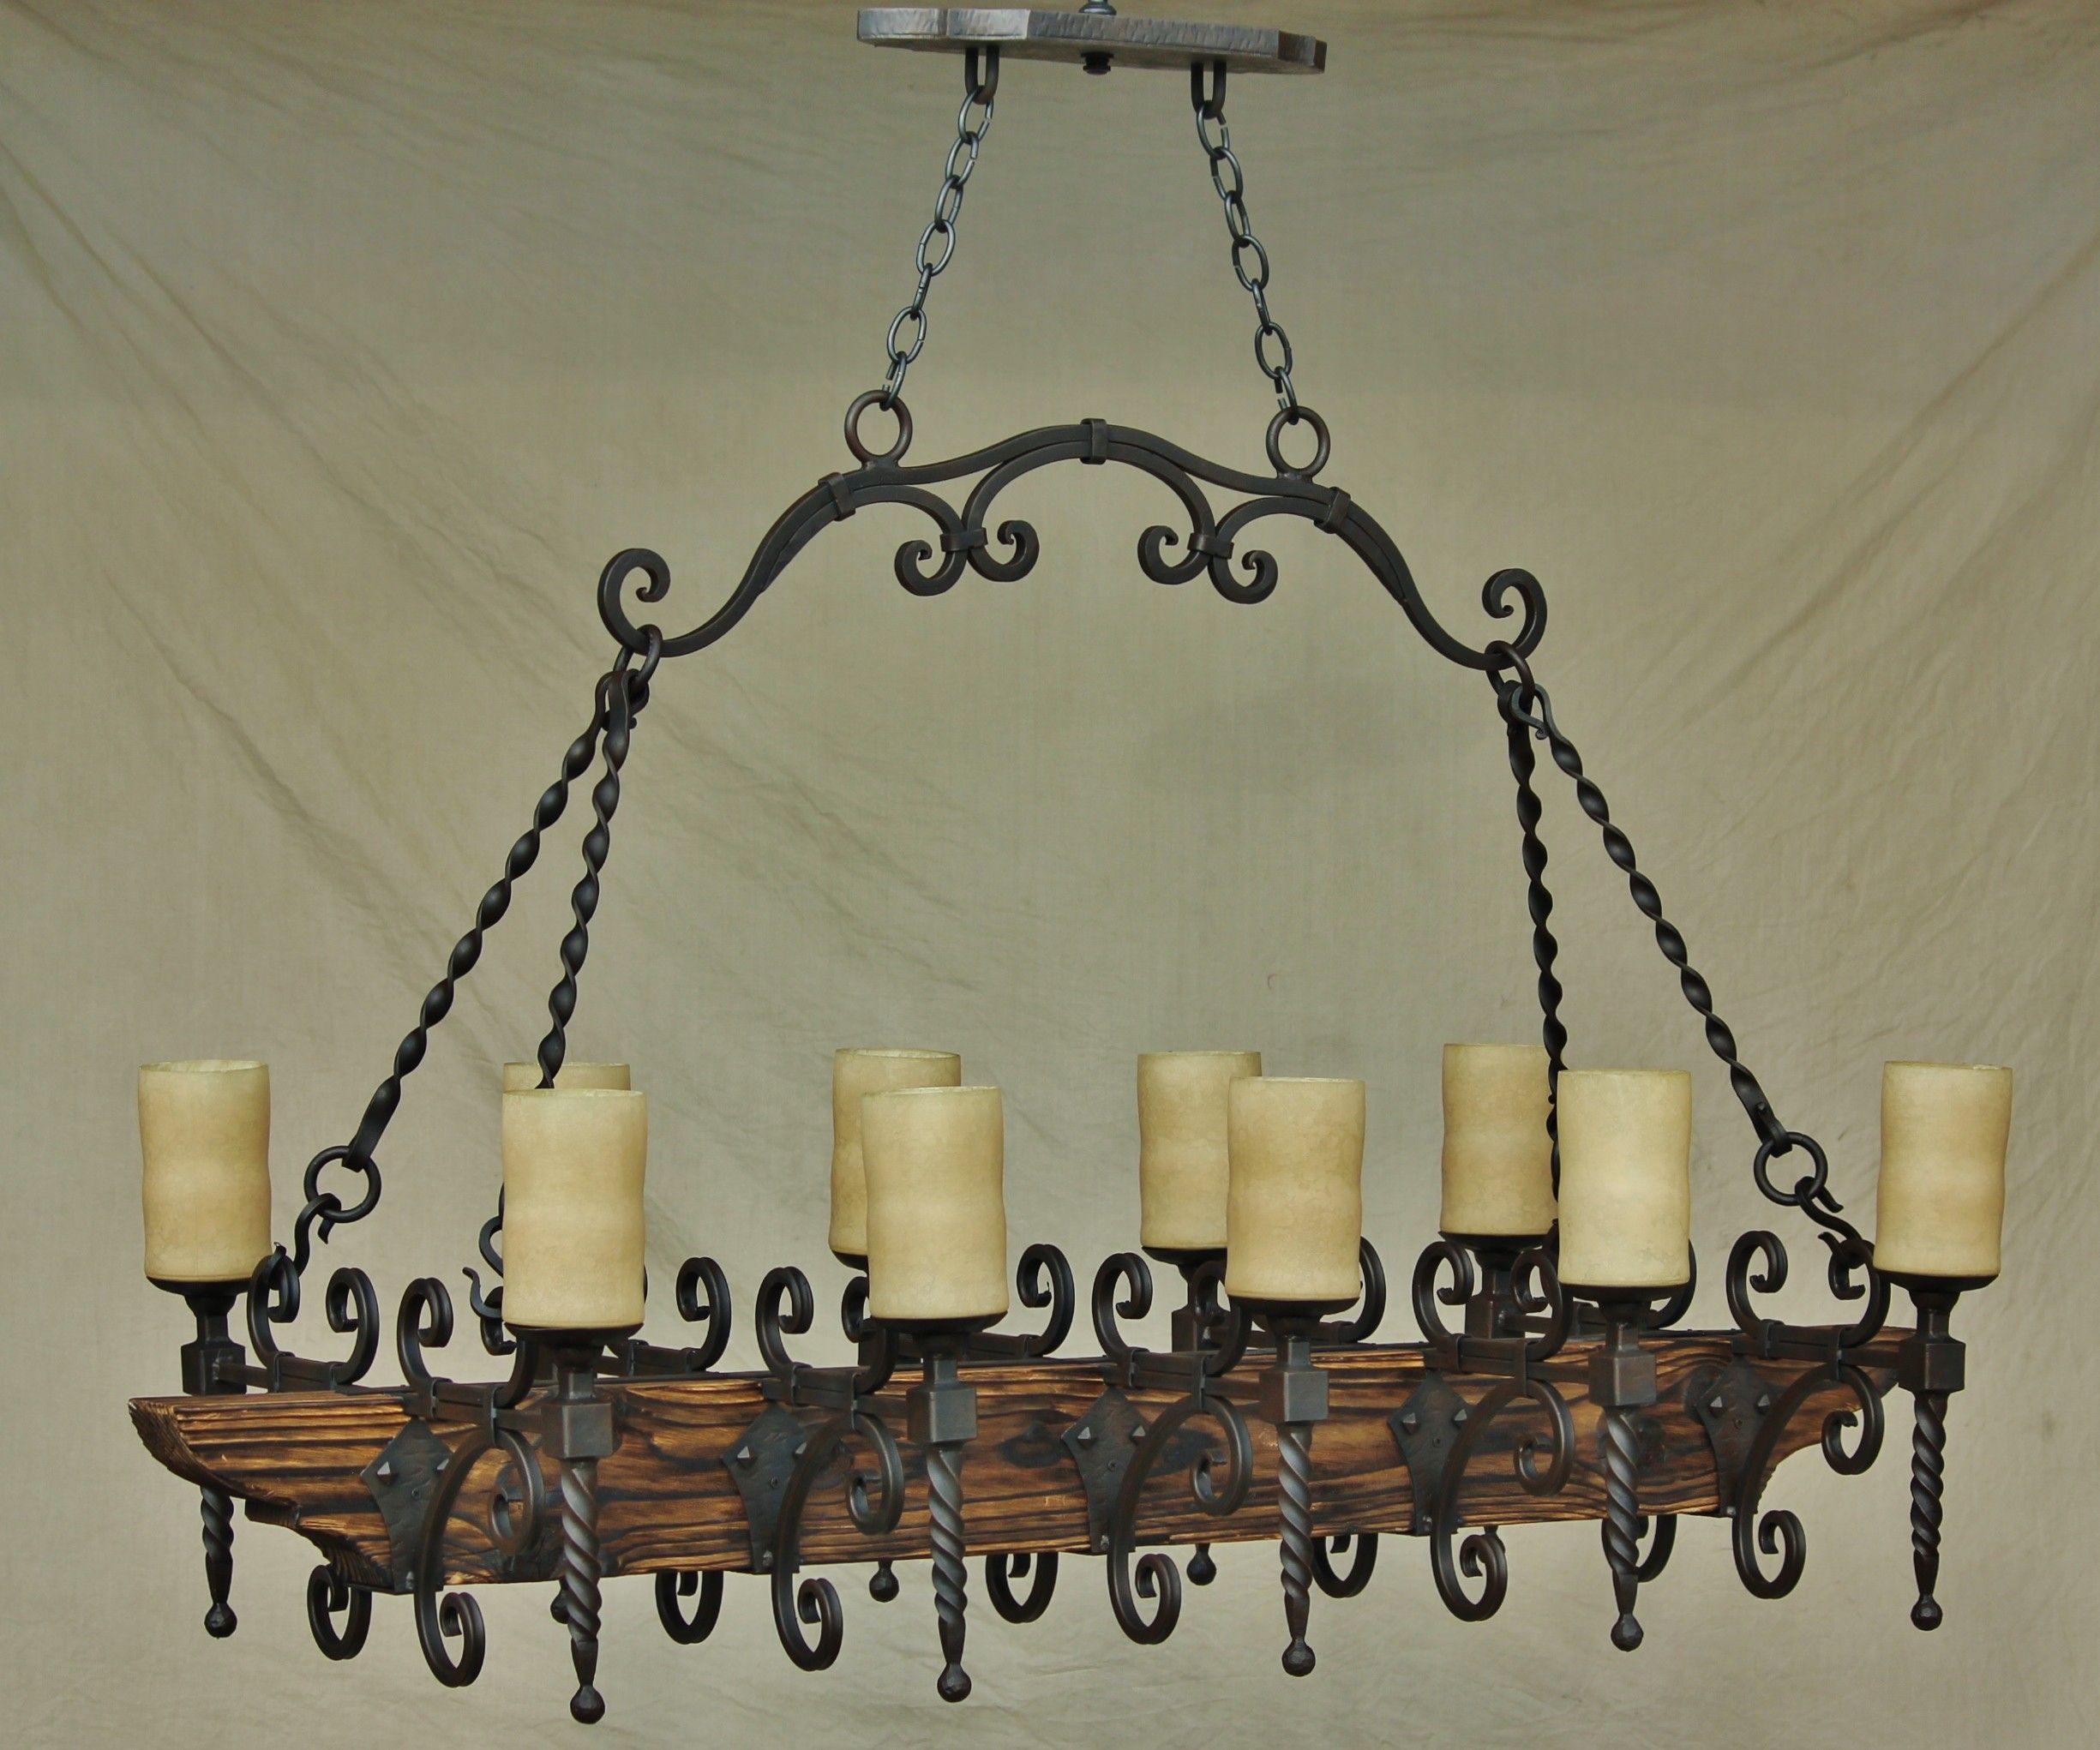 Country italian log cabin tuscan chandelier hand forged wrought iron country italian log cabin tuscan chandelier hand forged wrought iron wood pot rack mozeypictures Image collections